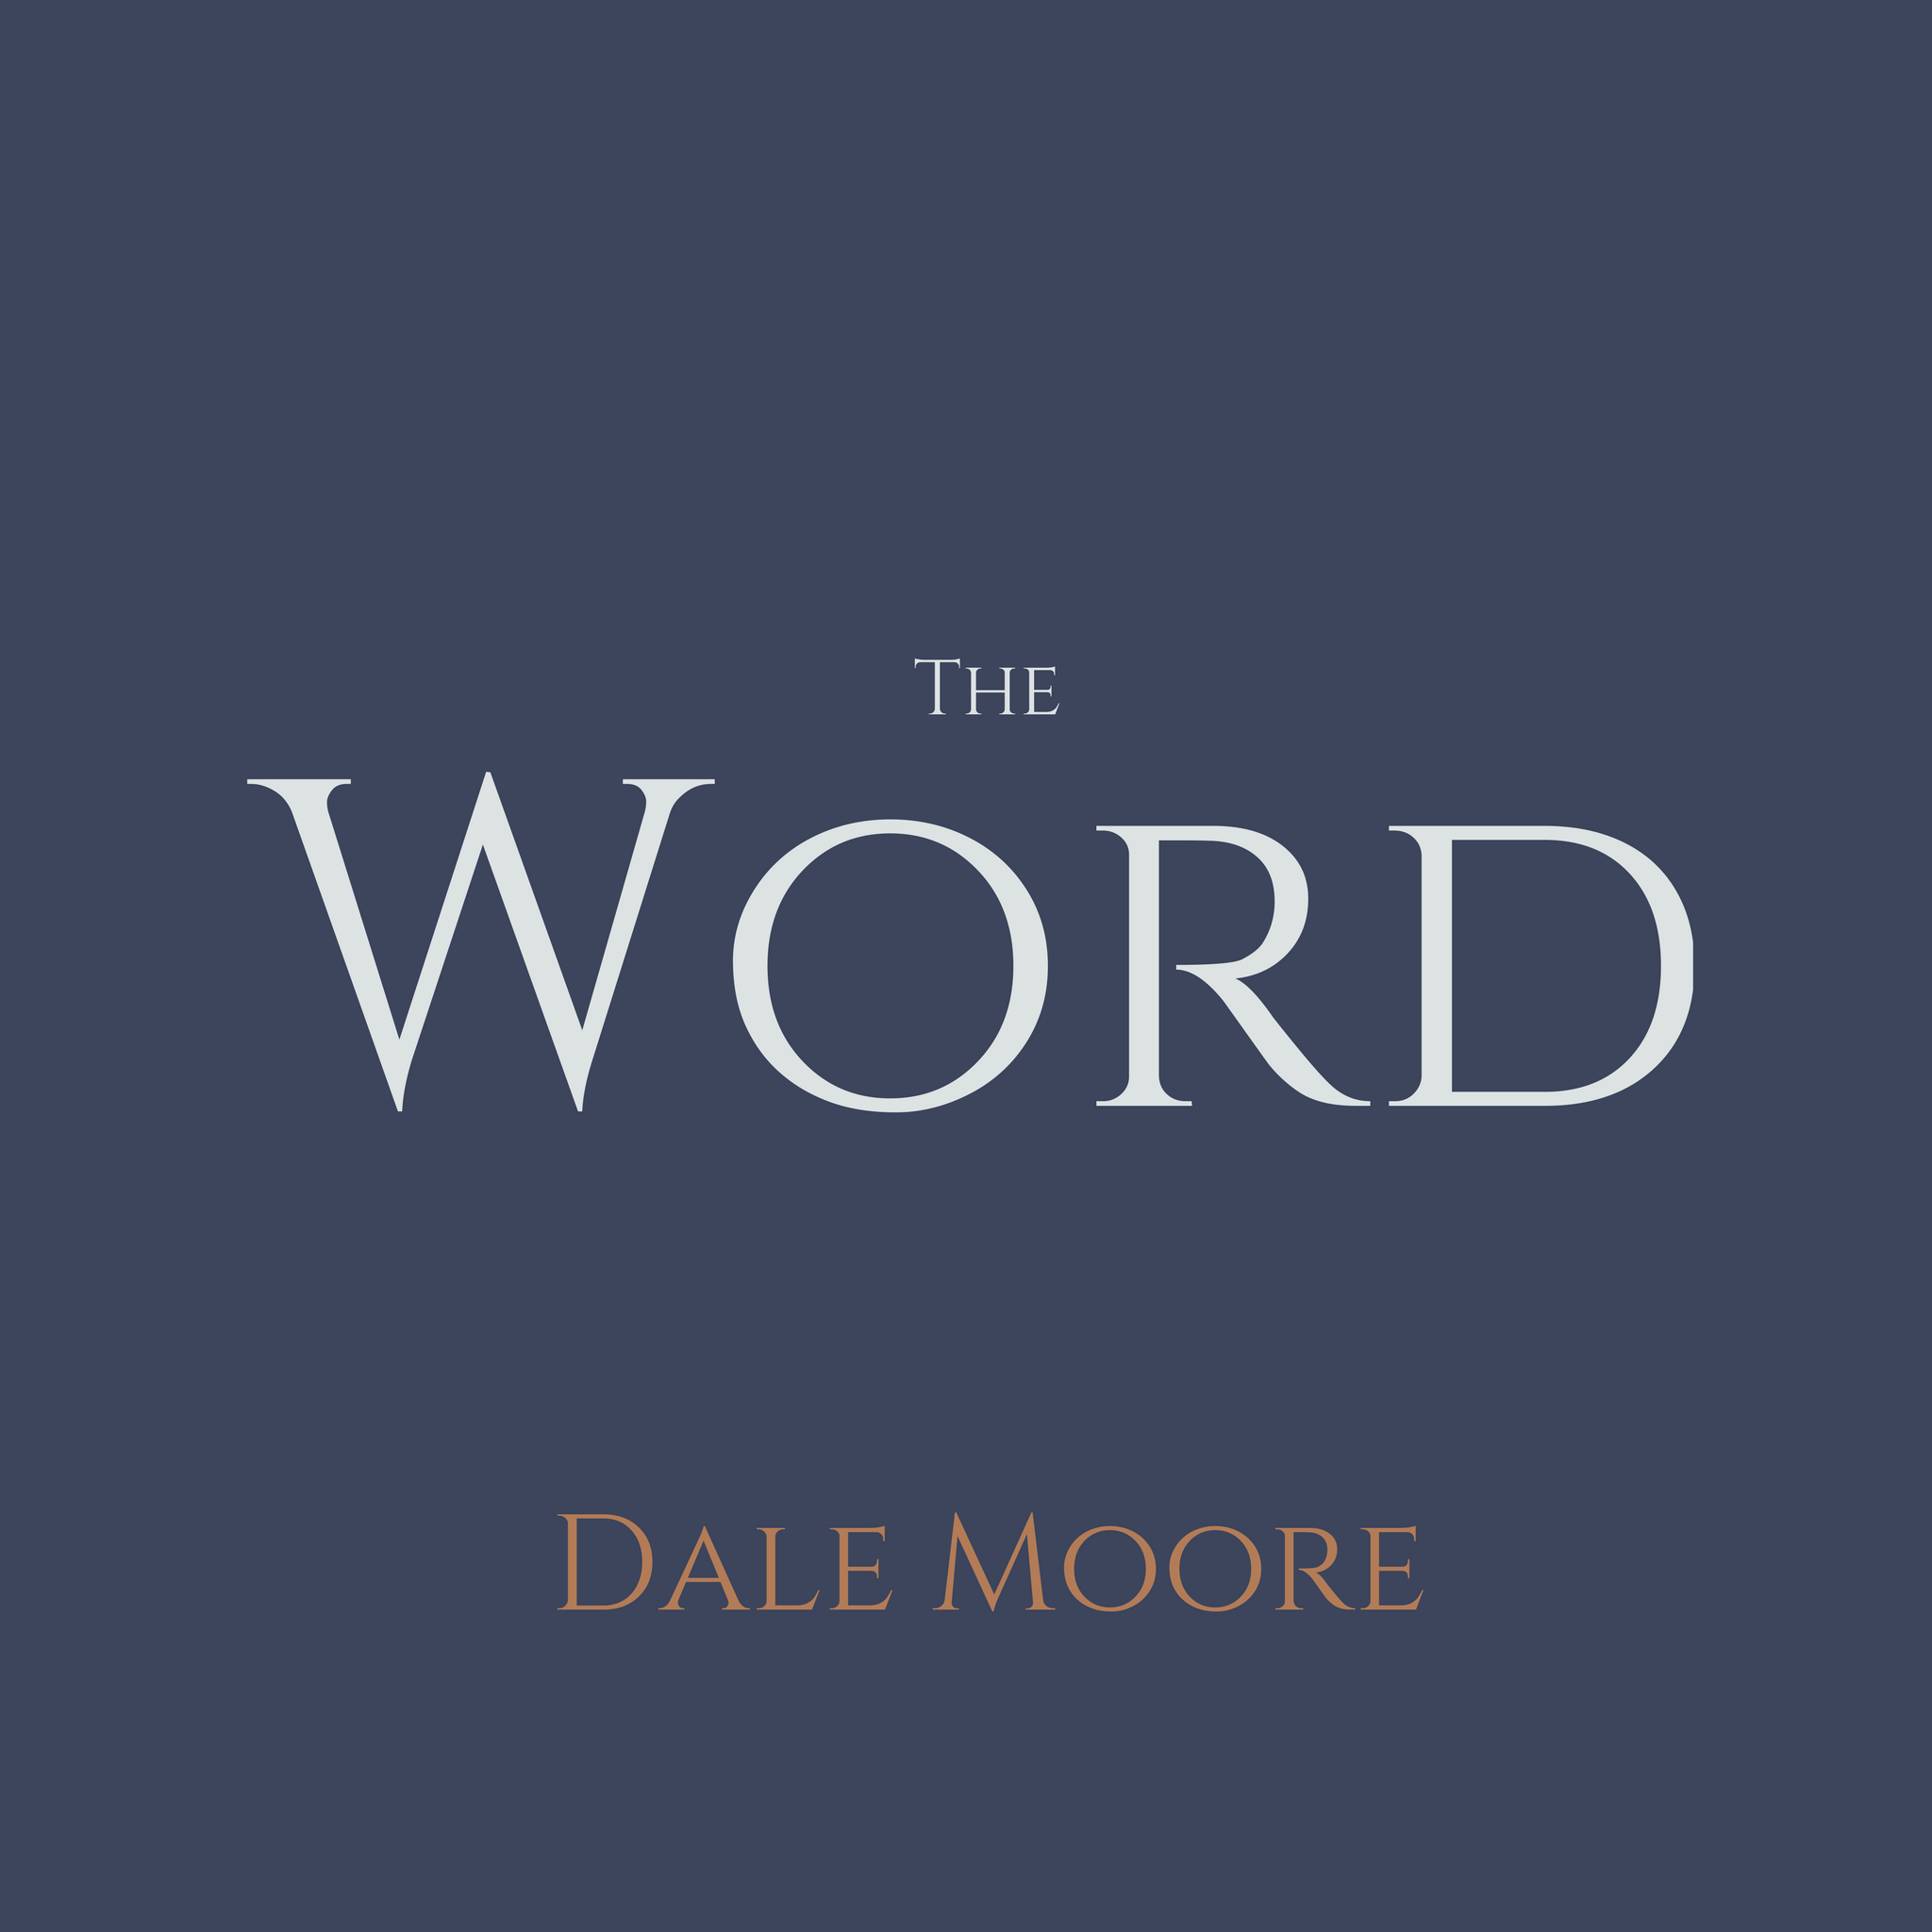 The Word: Episode 0595 1 Timothy 4:2-3